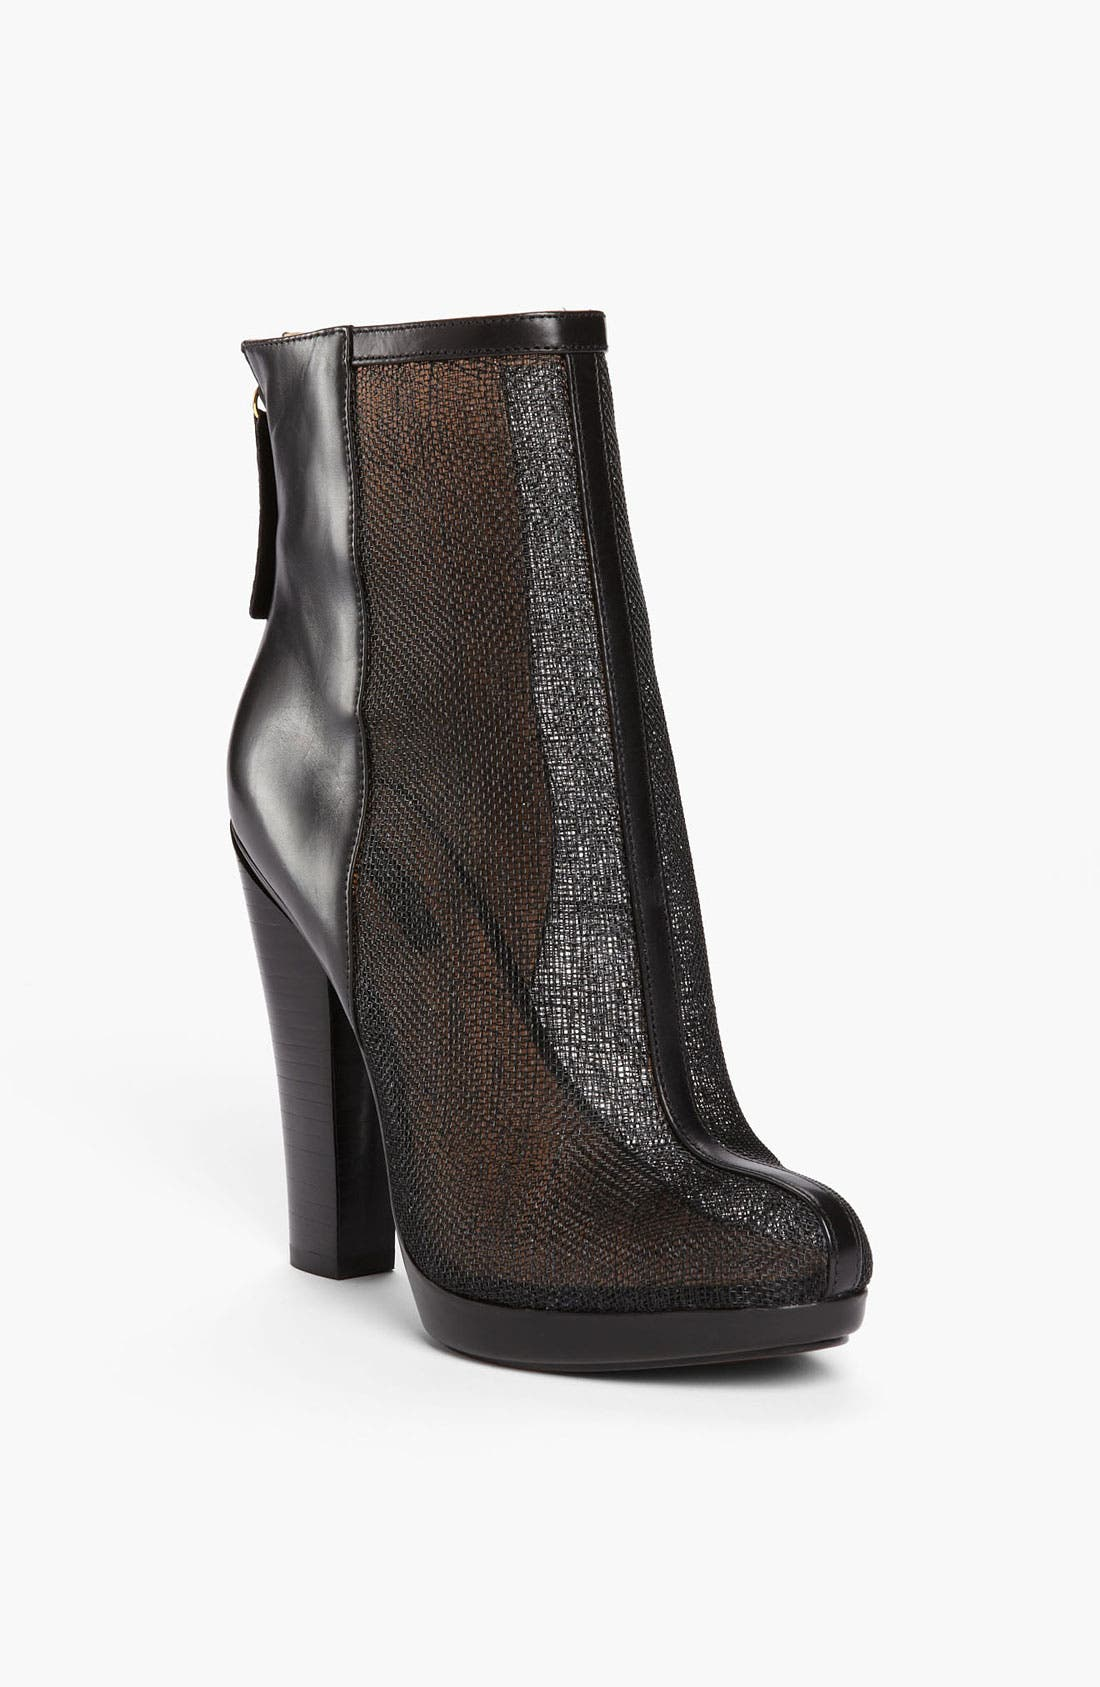 Alternate Image 1 Selected - Rachel Zoe 'Maddy' Boot